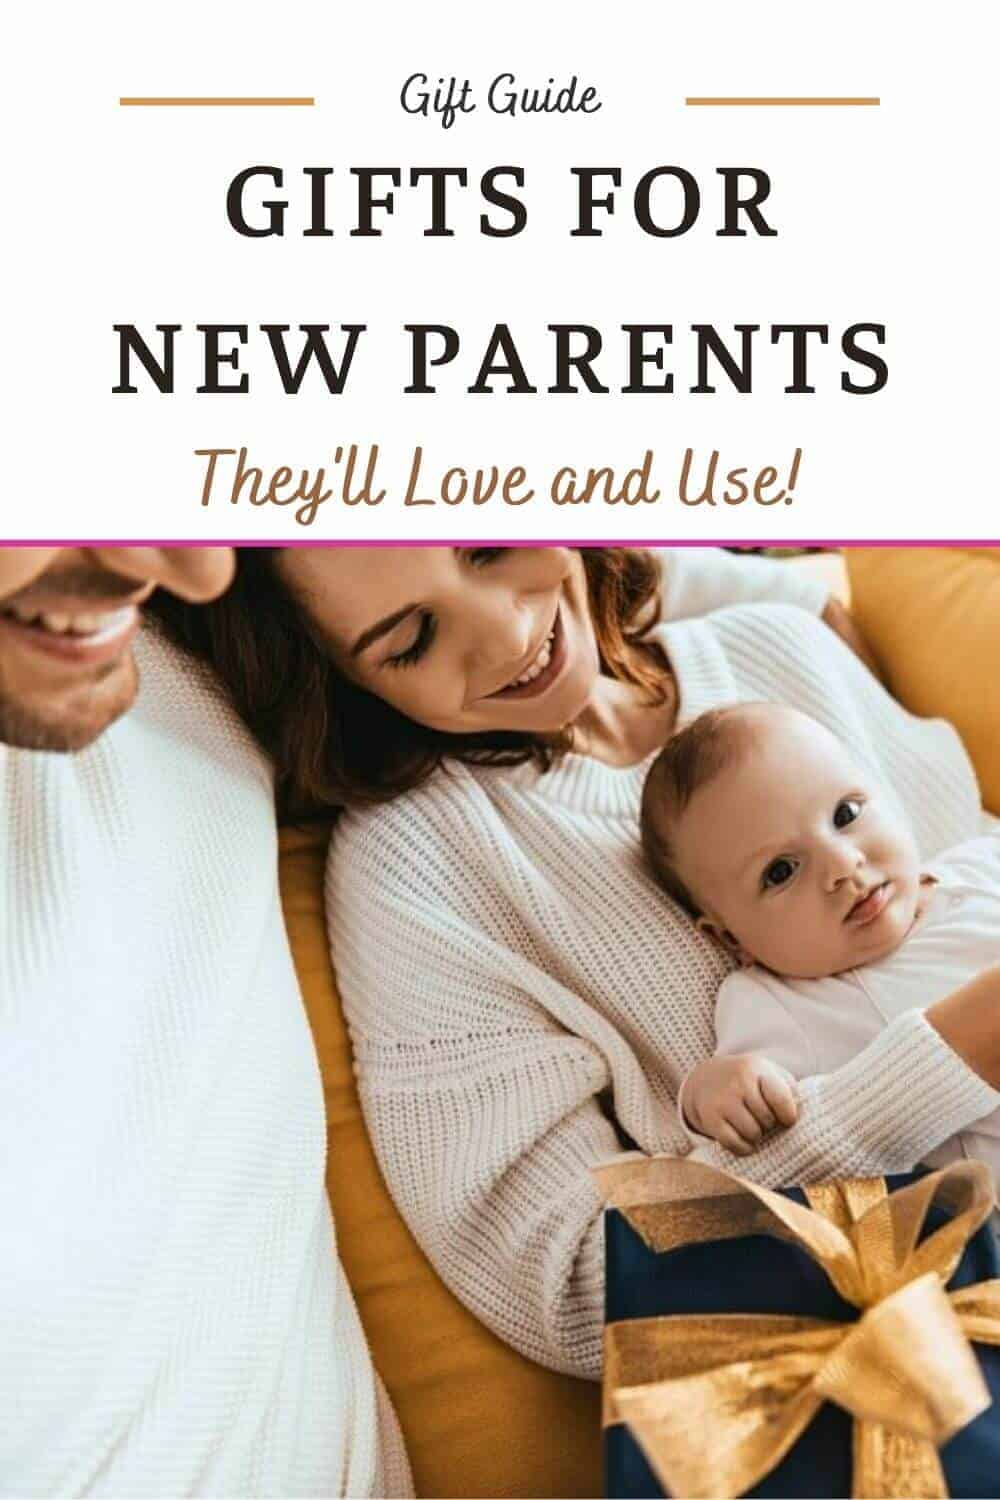 Gifts for New Parents - First Time Parents Gift Ideas